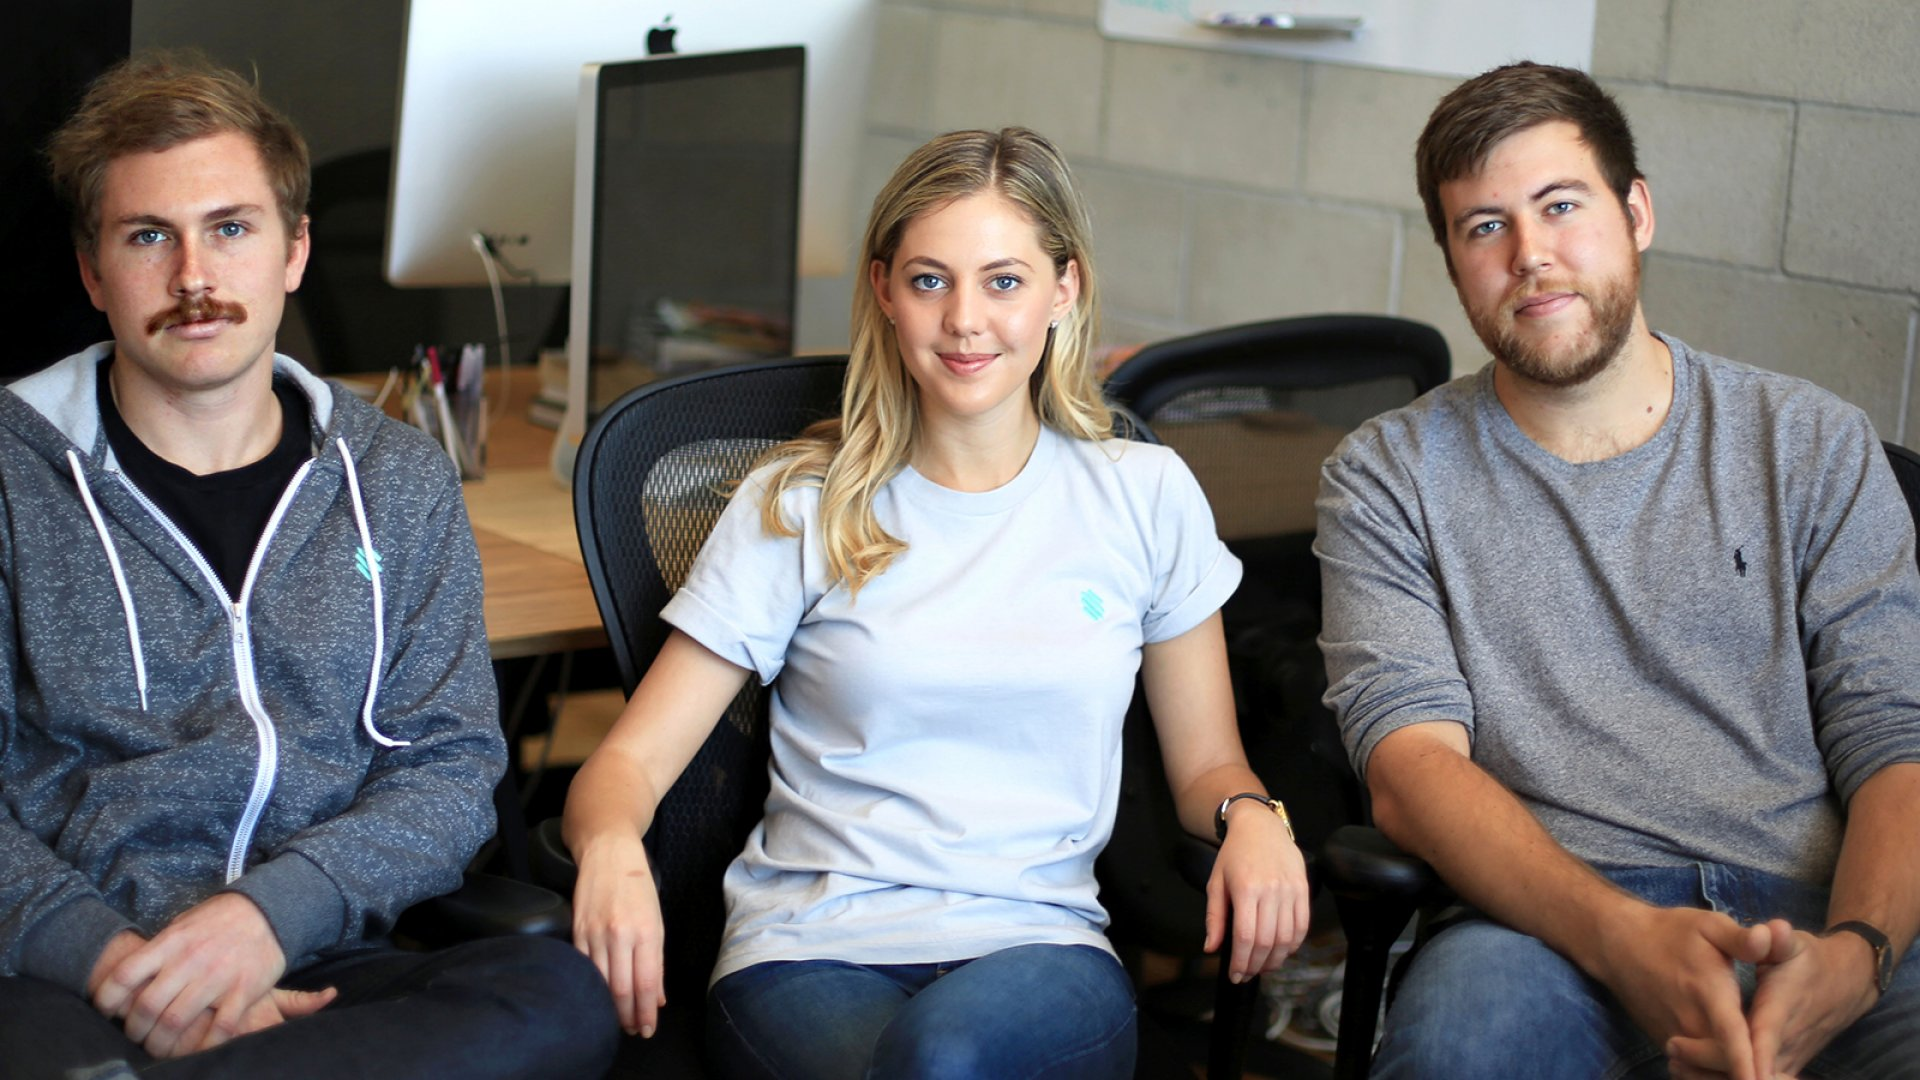 Stem's co-founders: (from left) head of product Jovin Cronin-Wilesmith, CEO Milana Rabkin, and president Tim Luckow.